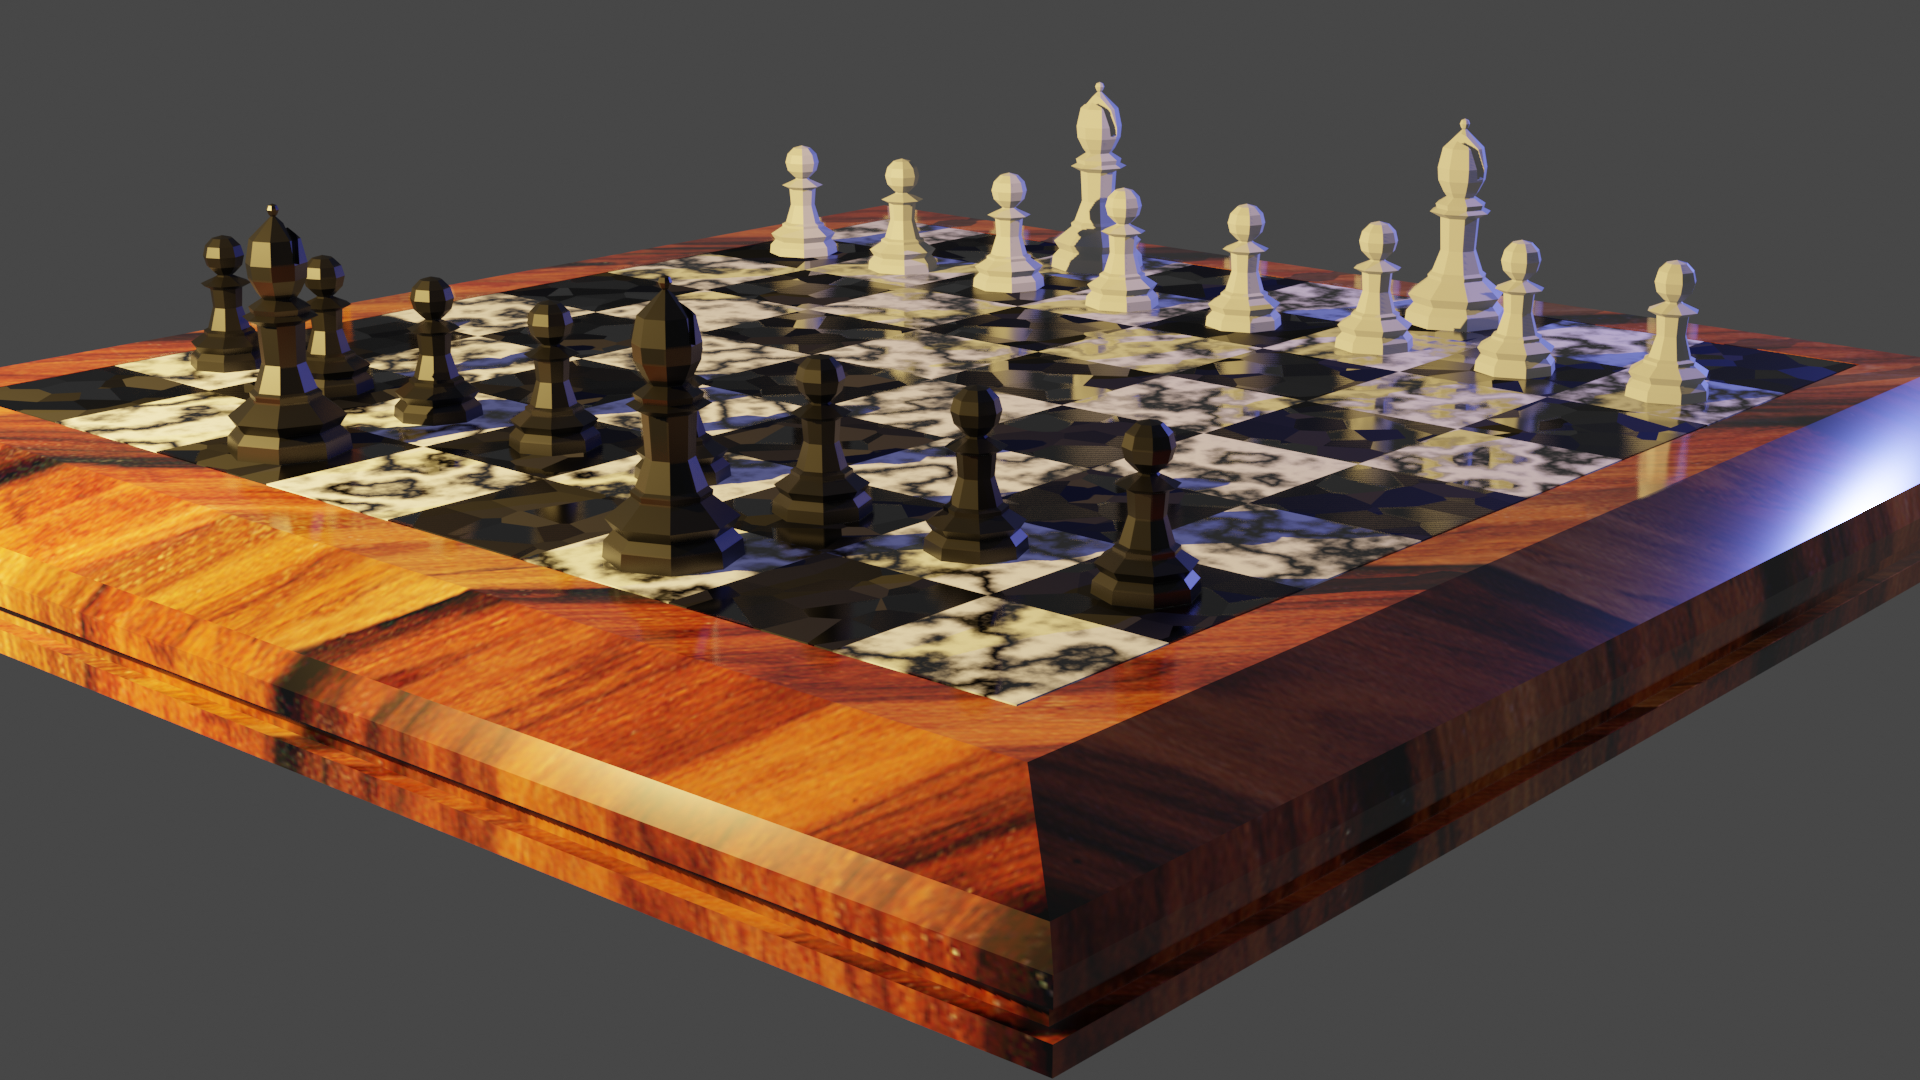 3D rendered chess set